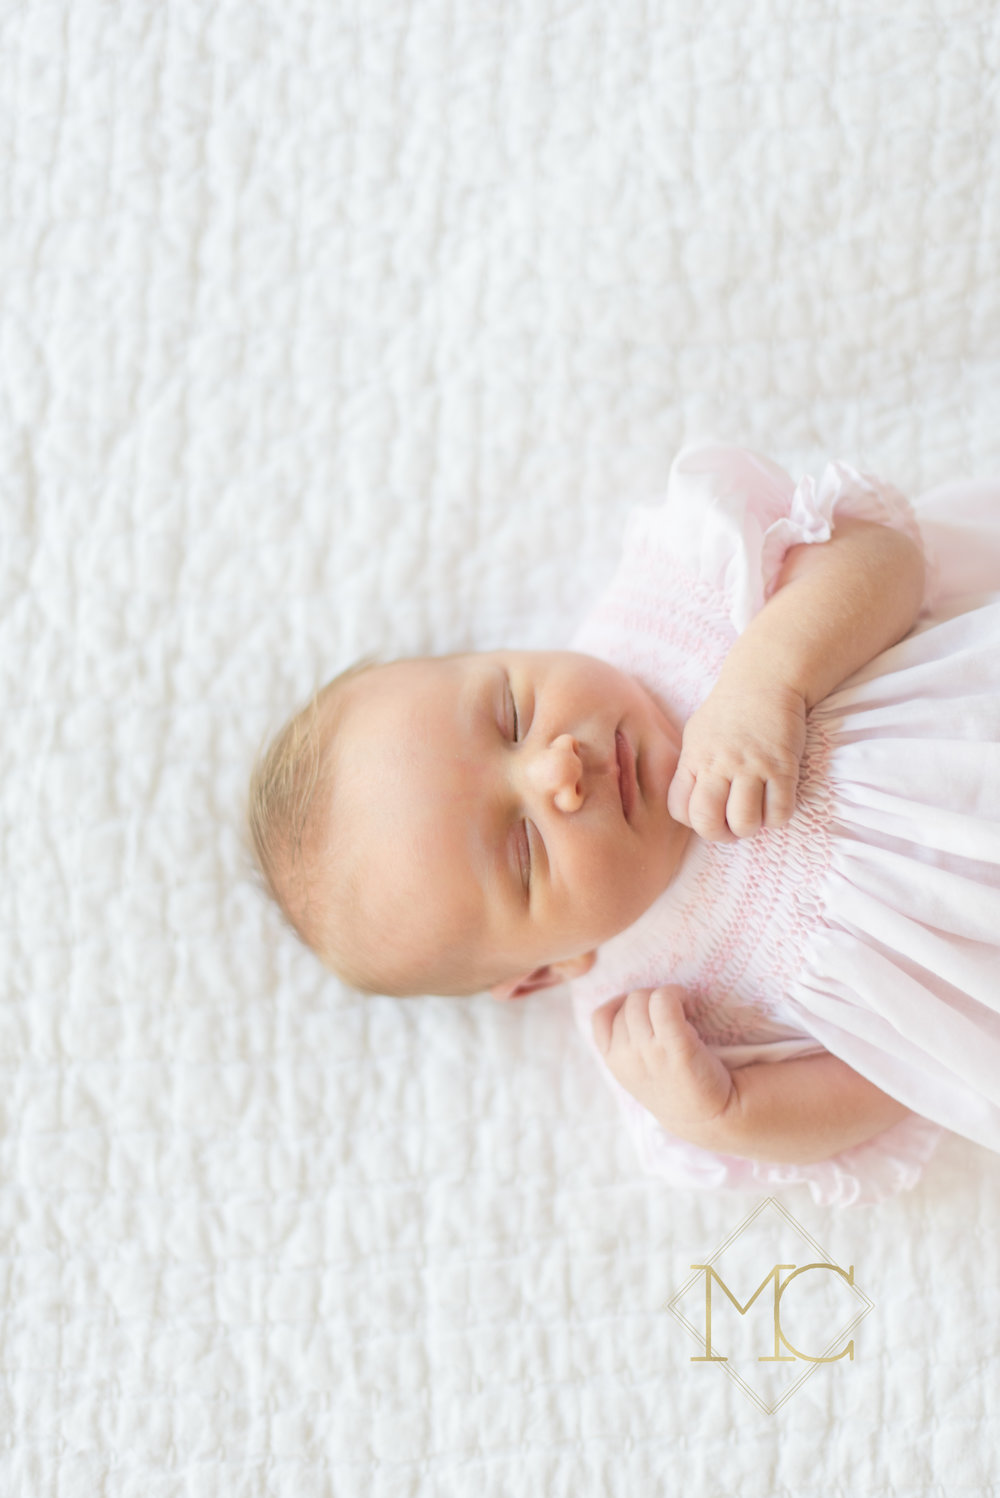 image from nashville newborn lifestyle photo session of baby girl